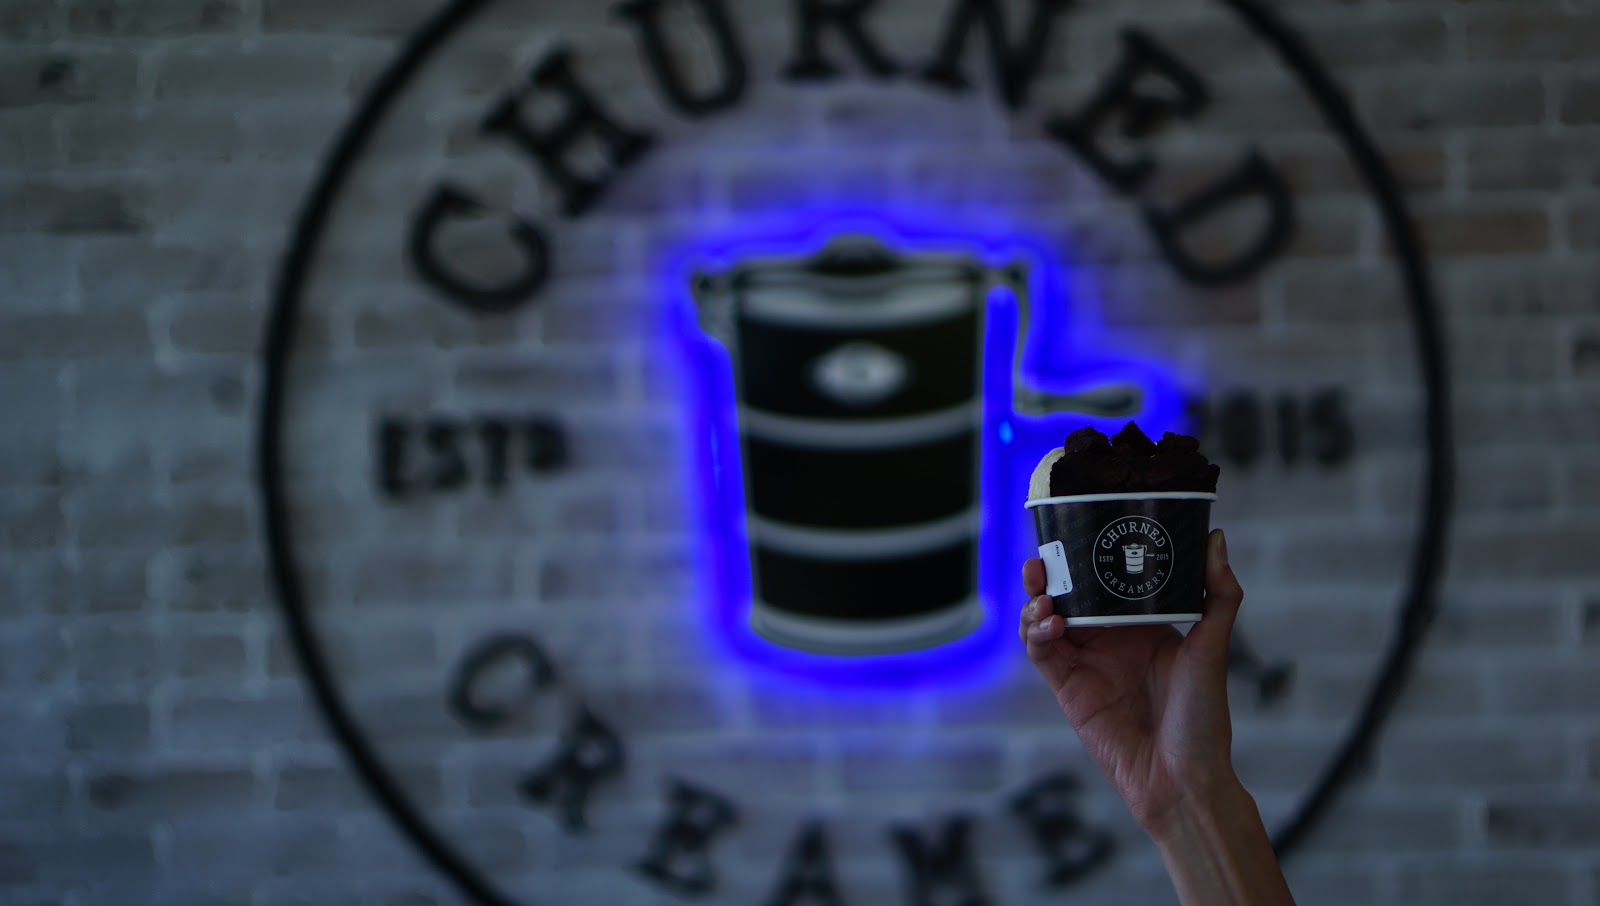 June 3 | Churned Creamery Opens In Cypress - Free Ice Cream Giveaway